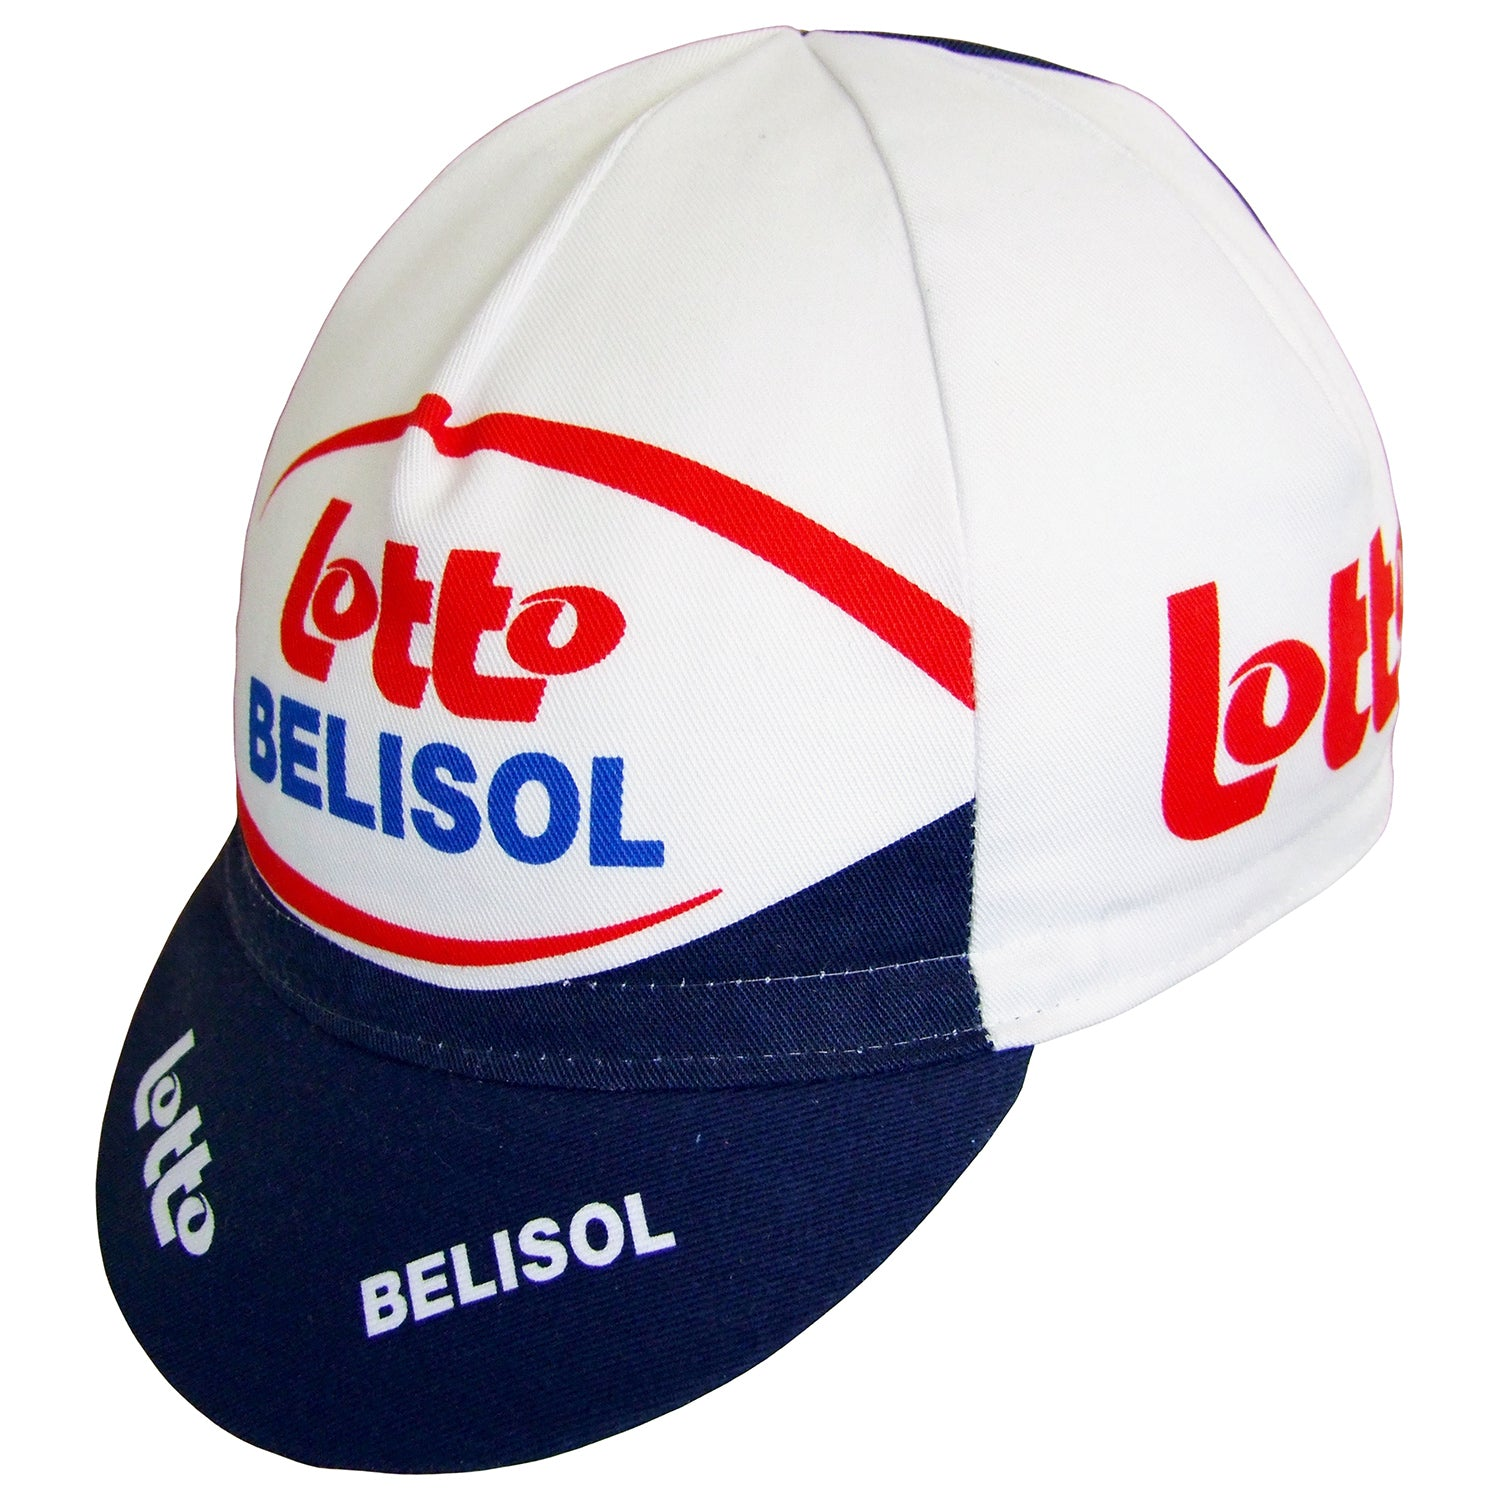 Lotto Belisol 2013 Cotton Cycling Cap